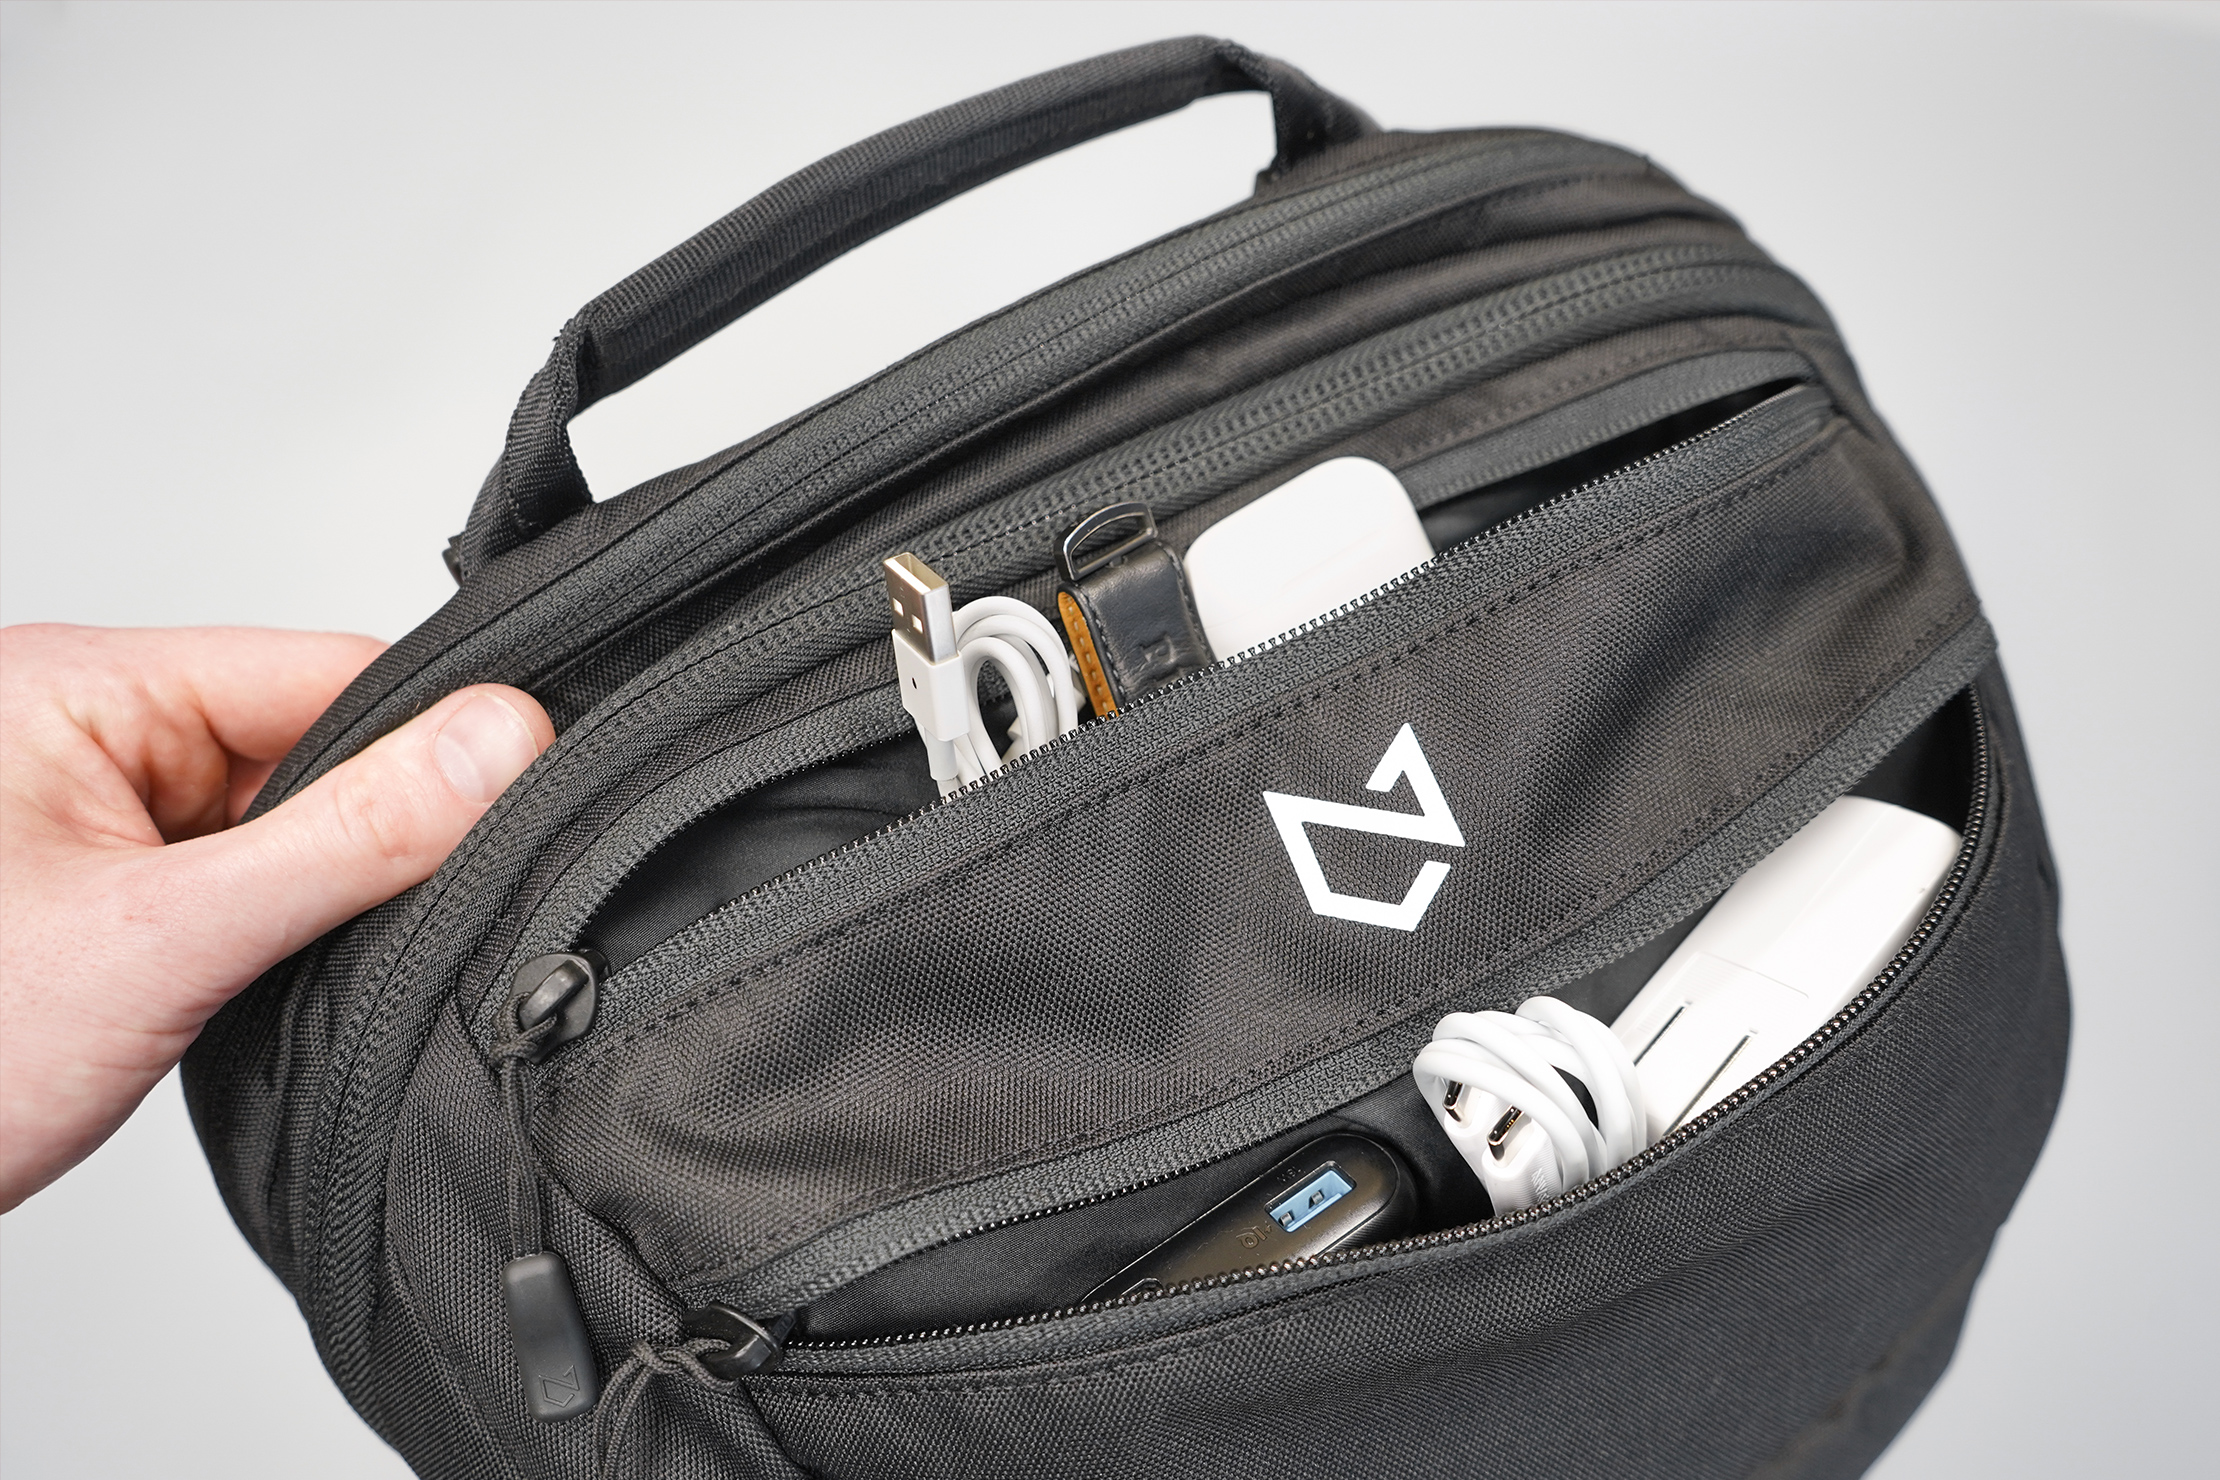 Minaal Carry-On 3.0 | A pair of front pockets keeps things within arm's reach